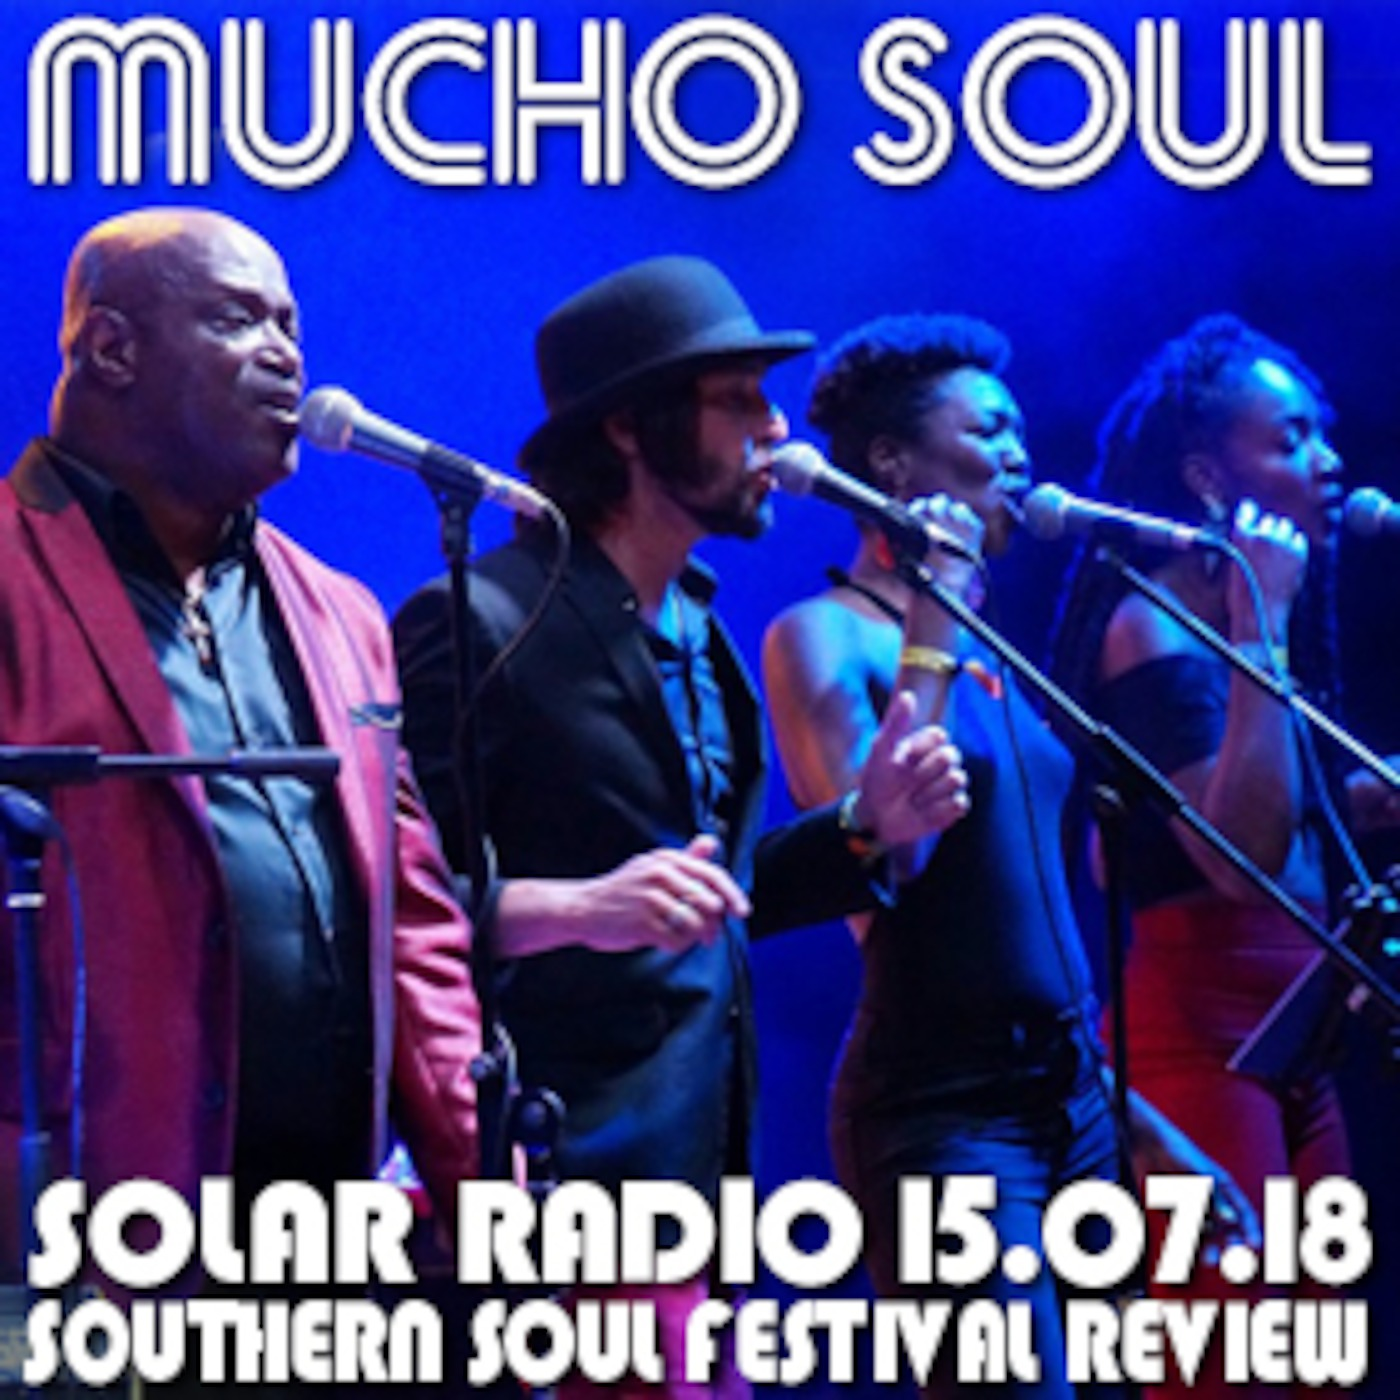 Mucho Soul Show Southern Soul Festival 2018 Review Special